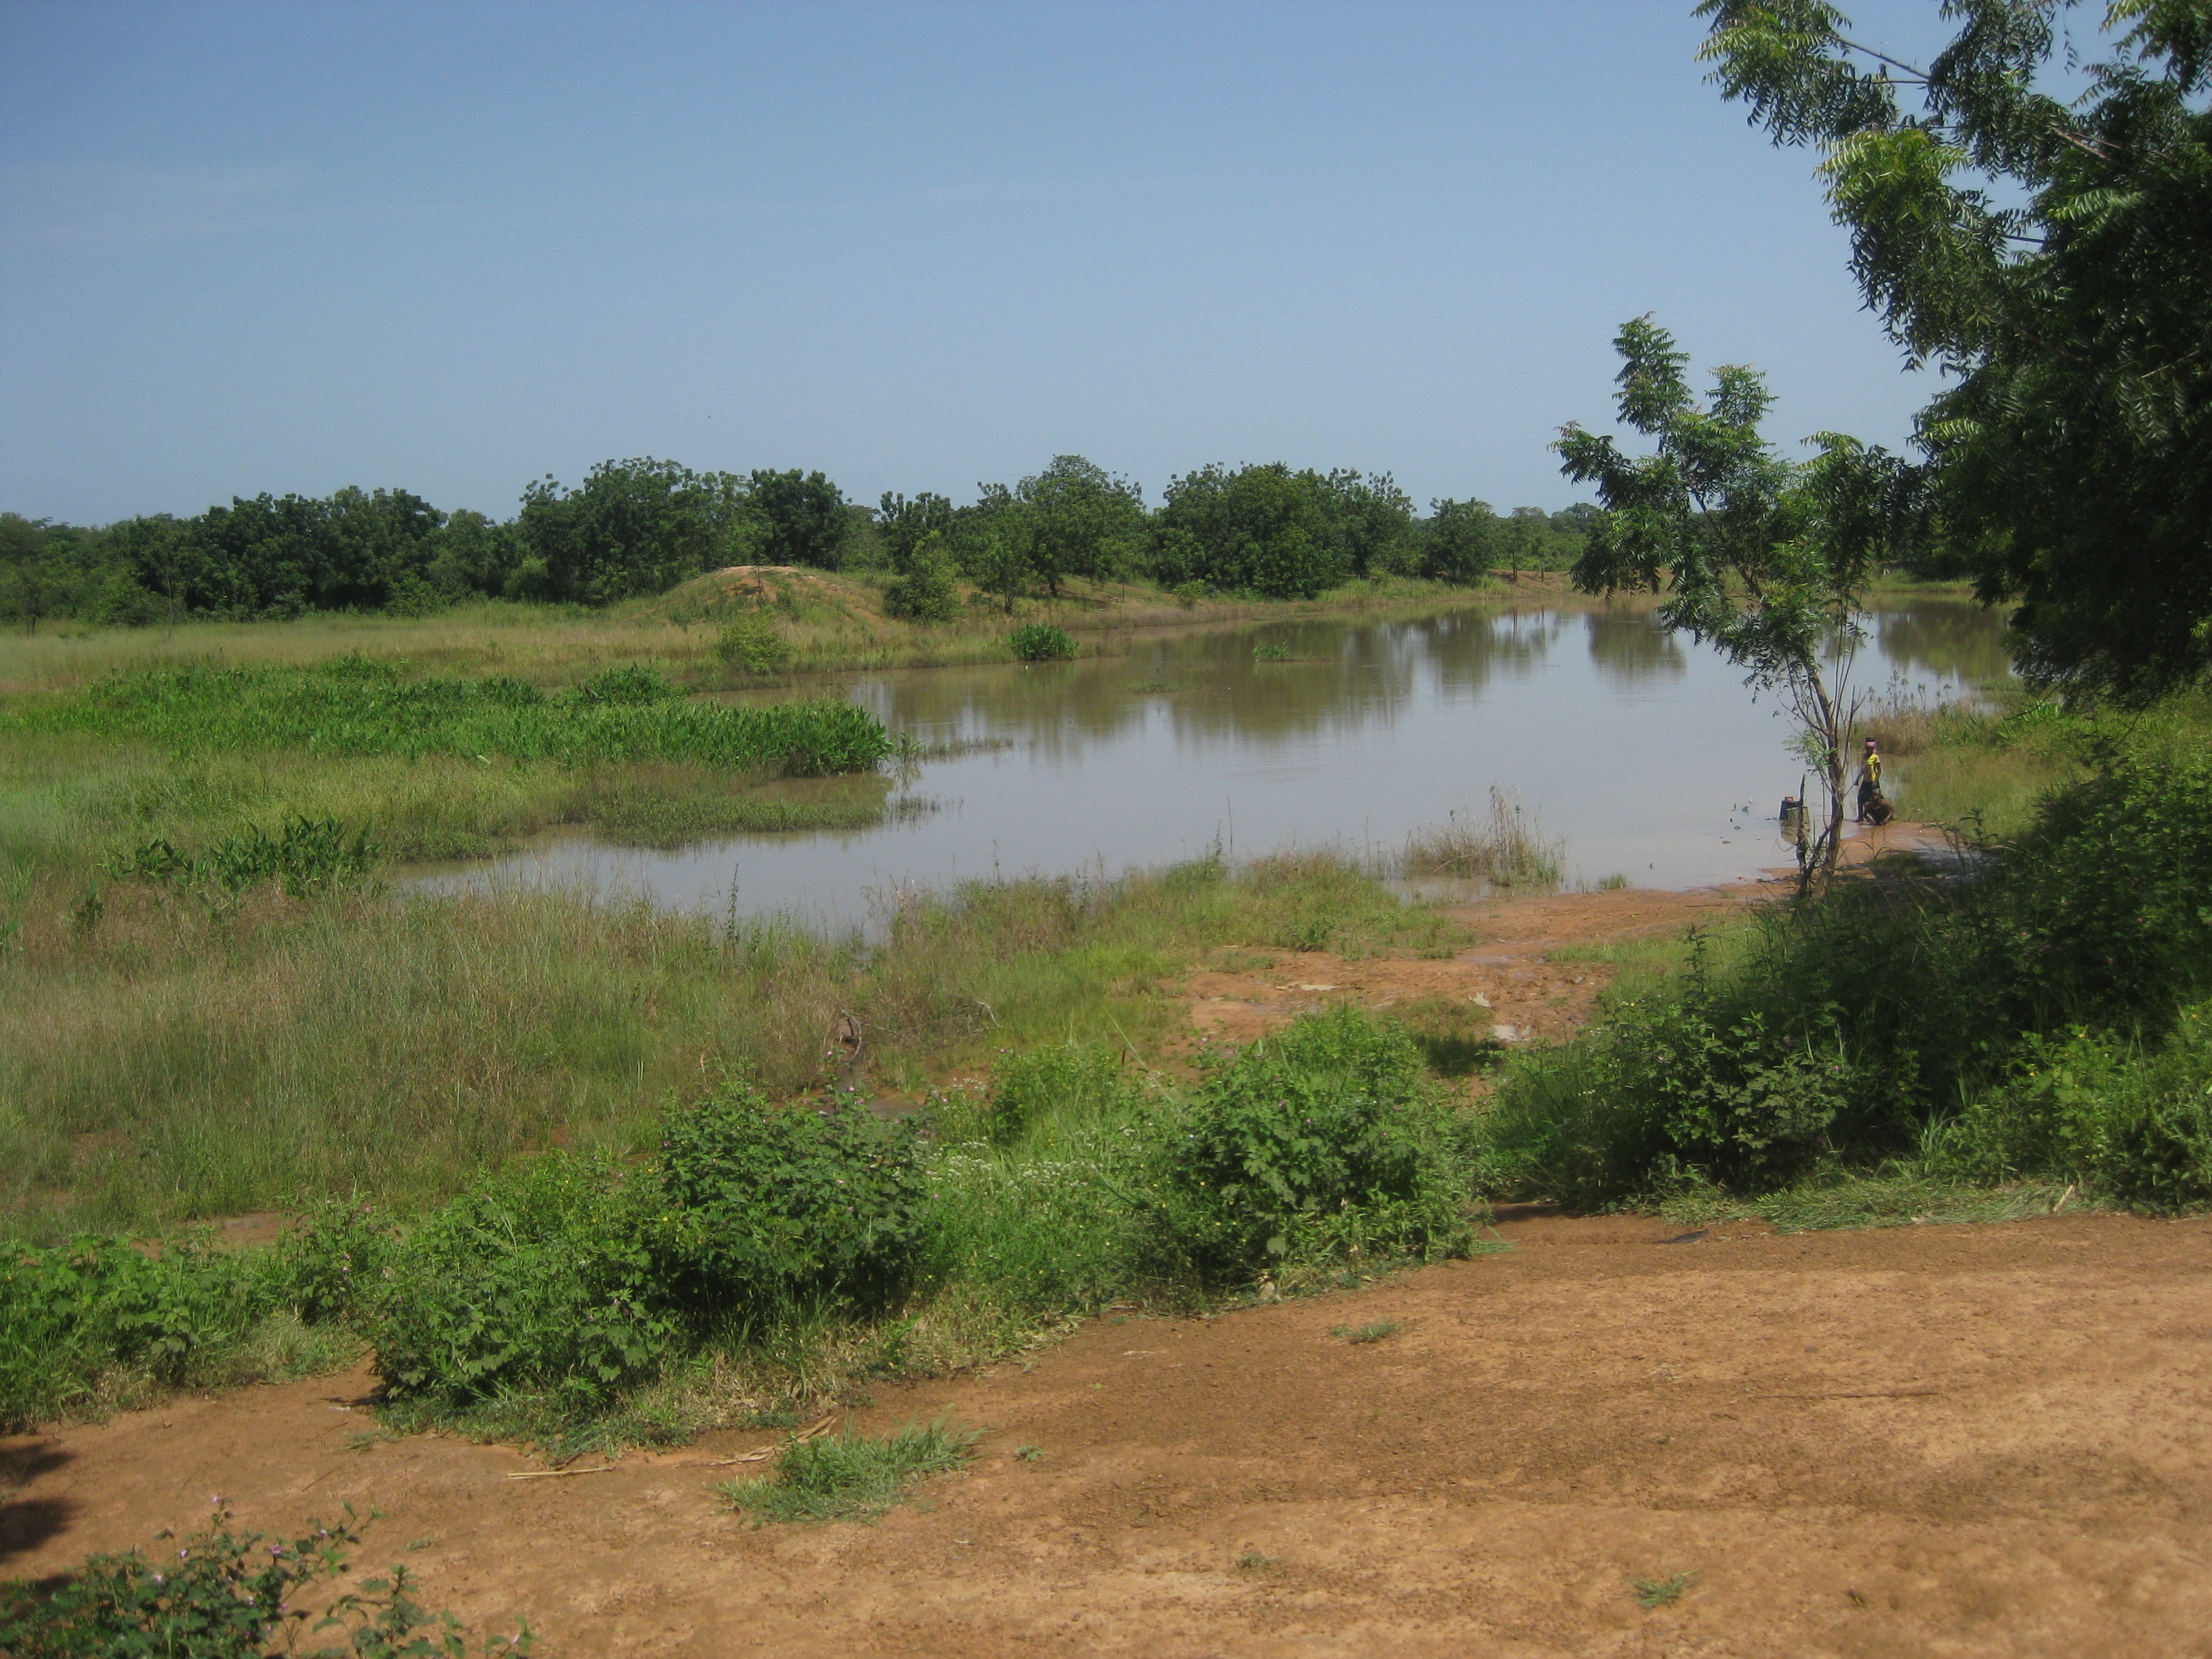 The Jerigu Dugout- a shallow, stagnant, mad-made pond.  This is their only source of water.